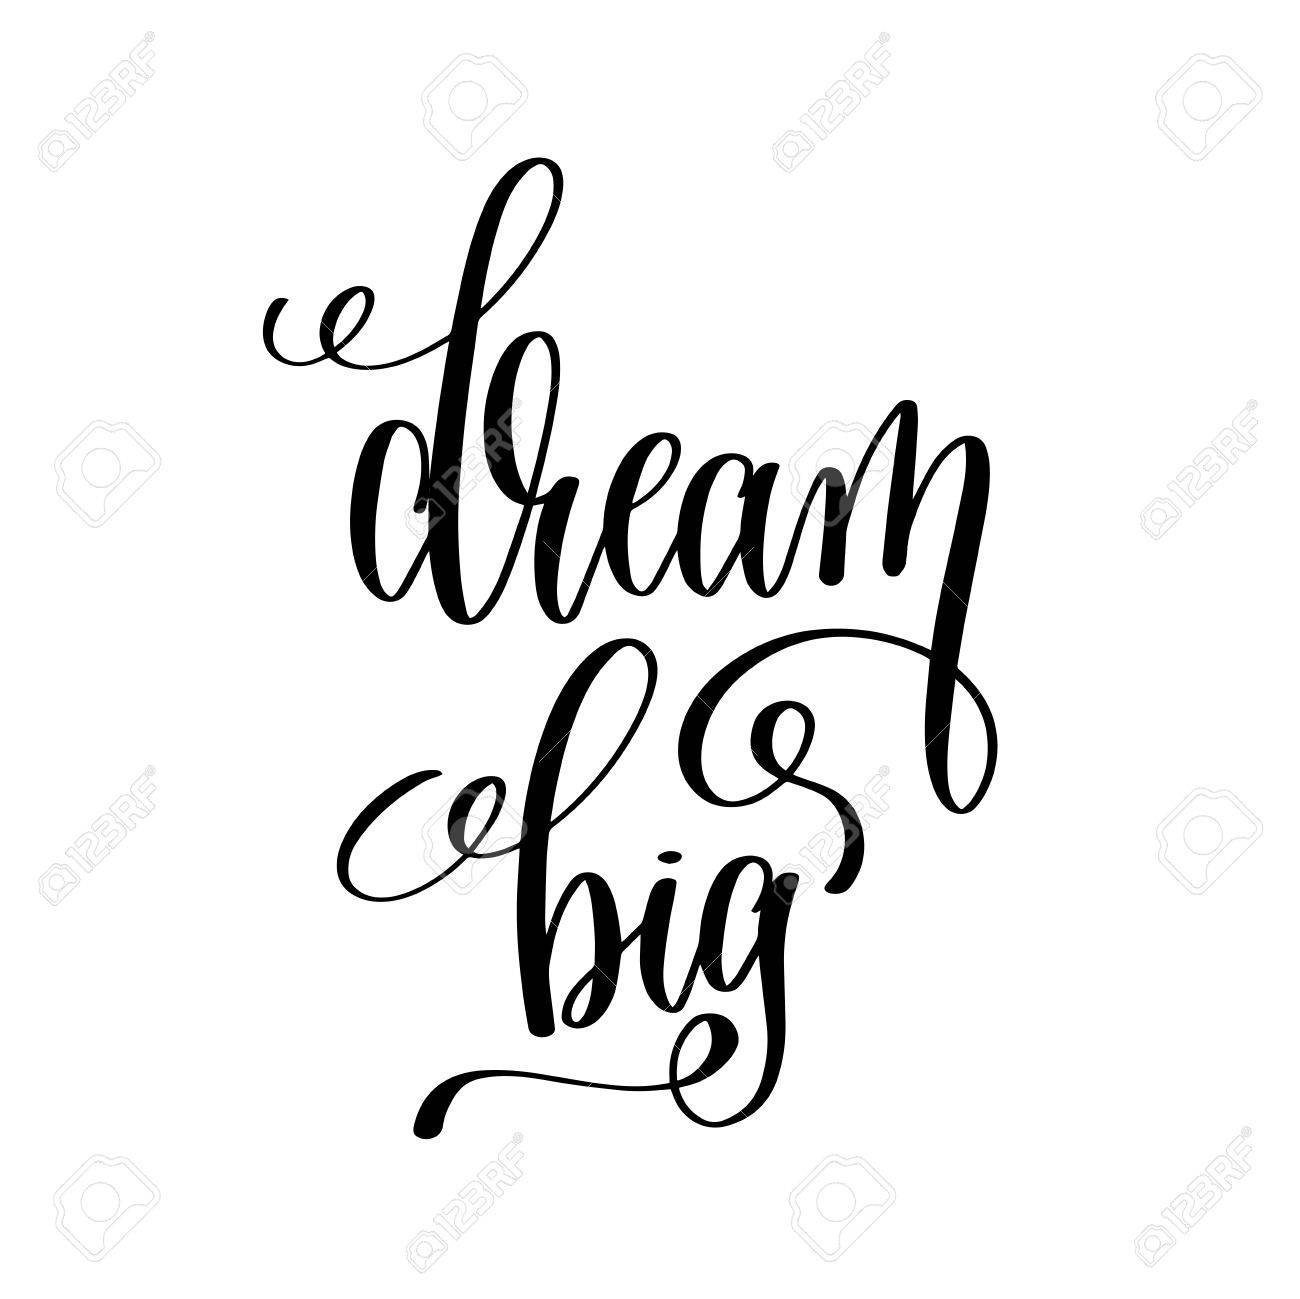 Dream Big Black And White Hand Written Lettering Positive Quote Stock Vector